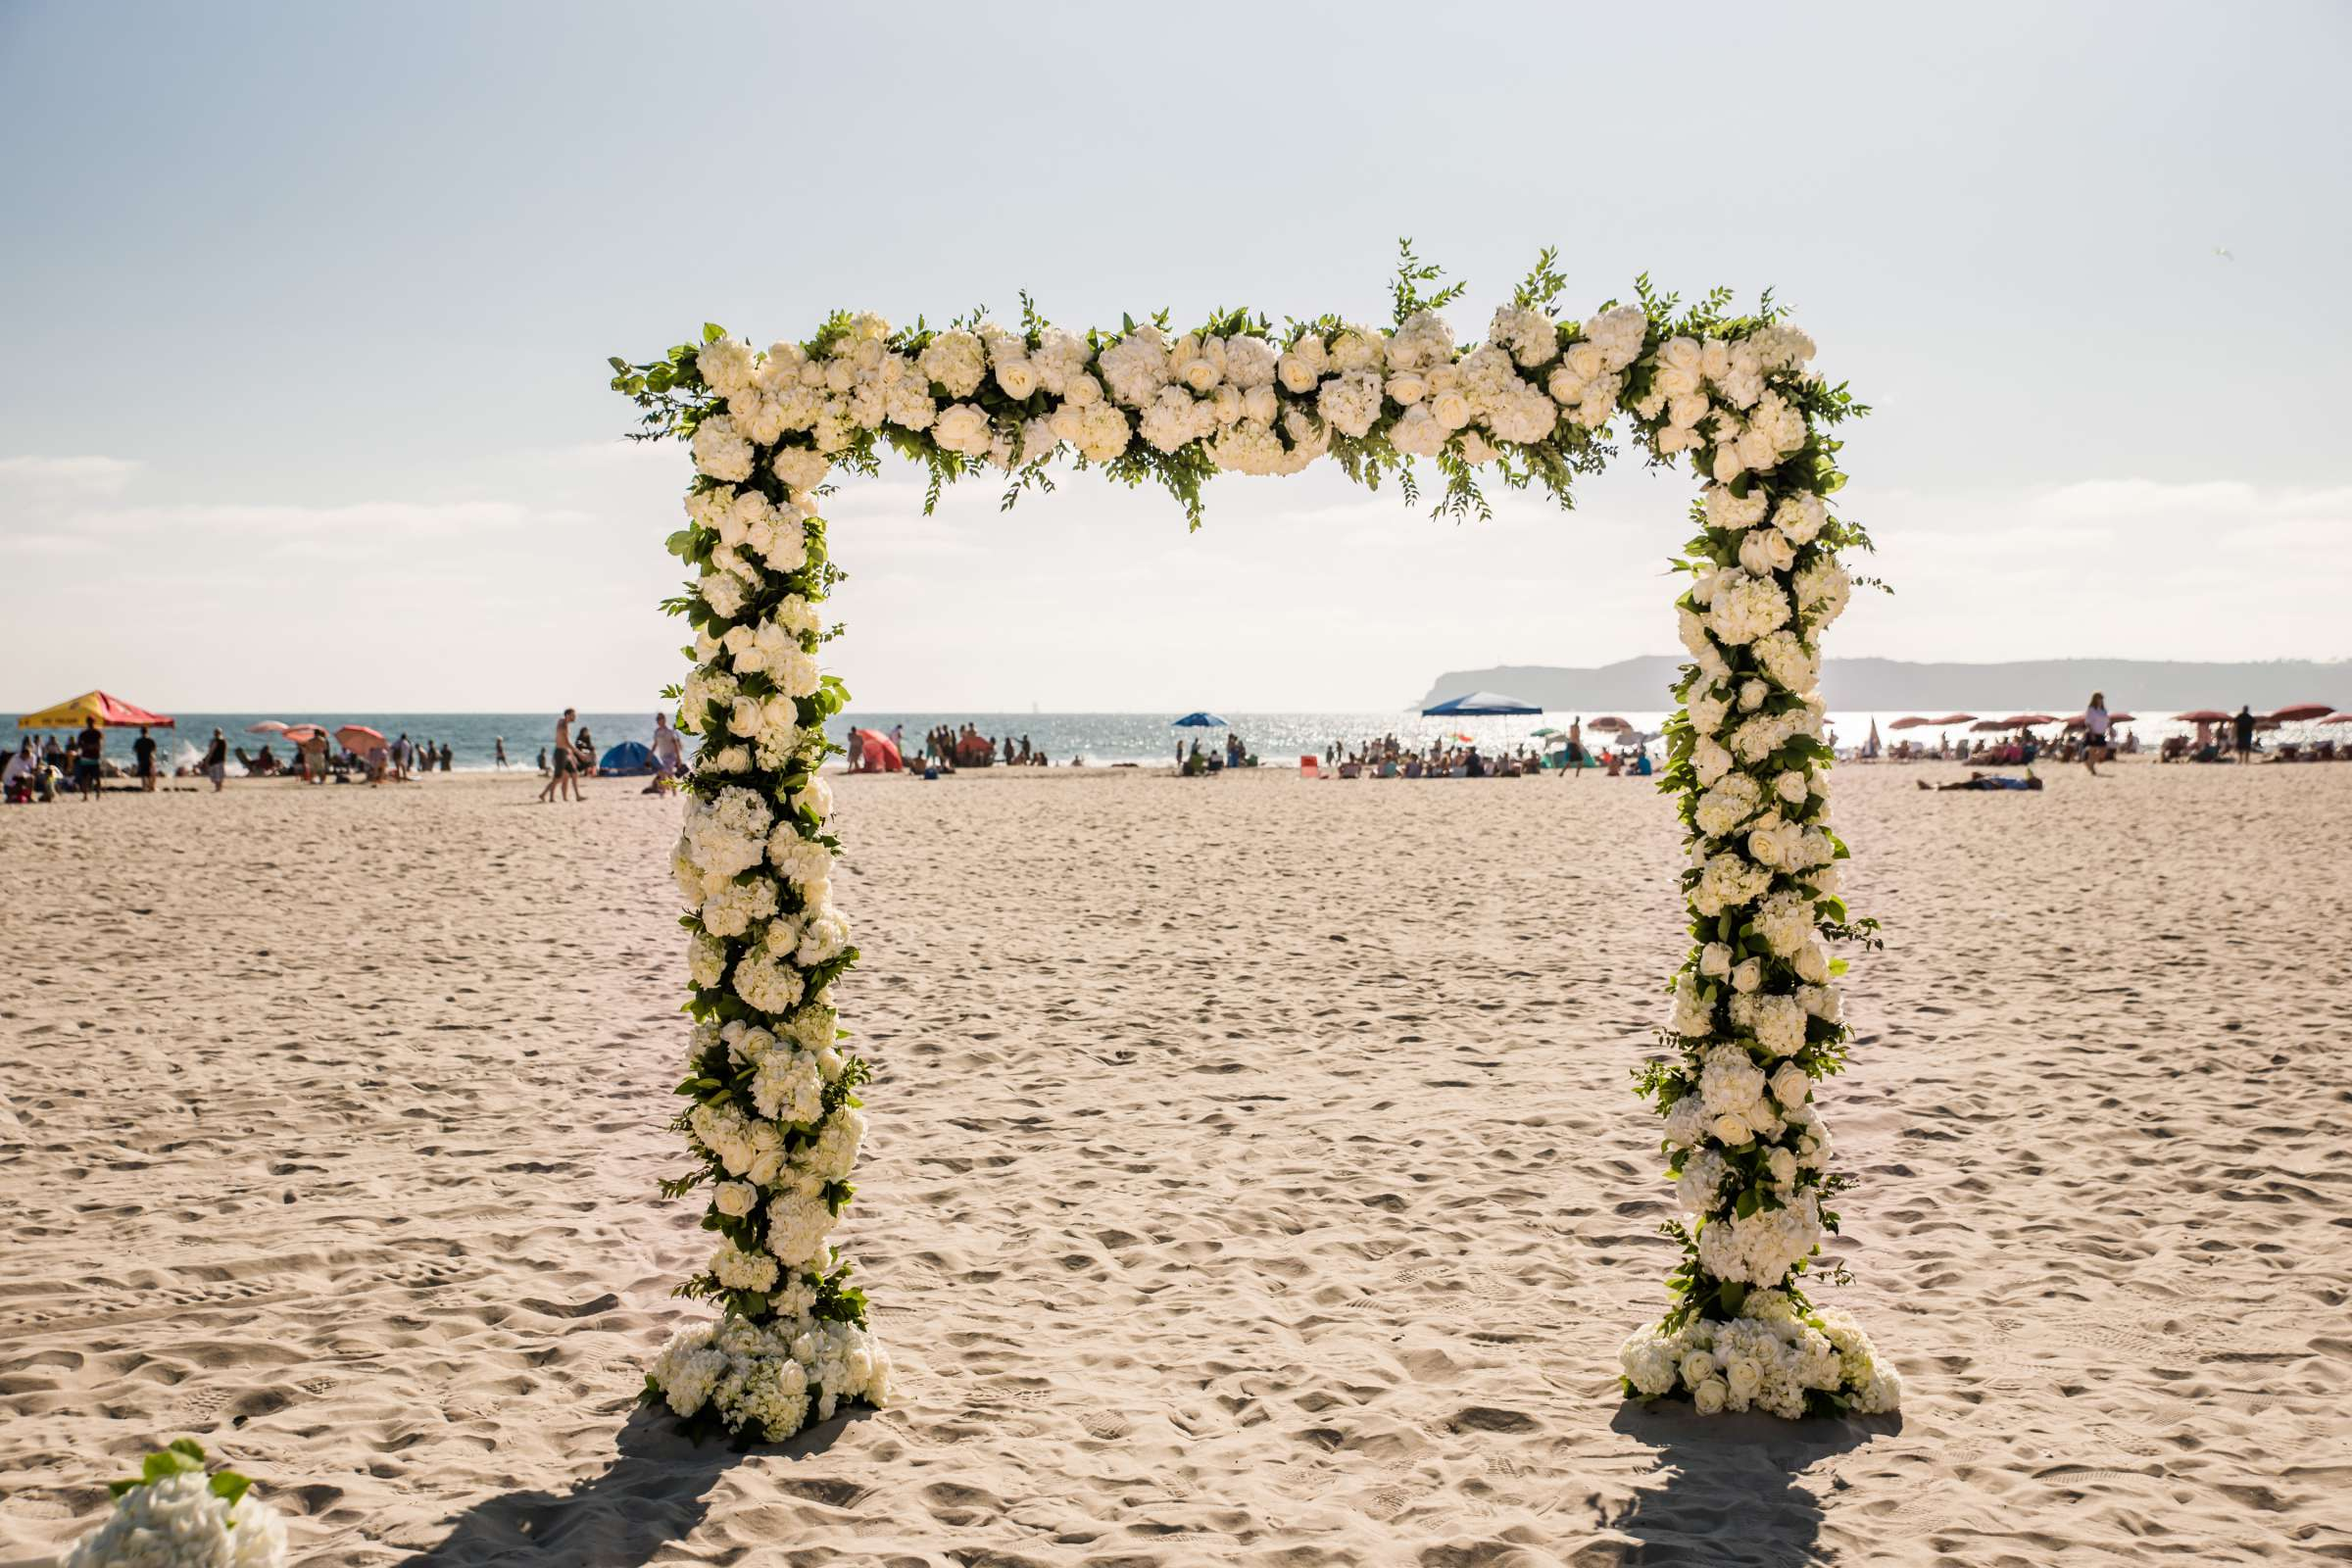 Hotel Del Coronado Wedding coordinated by Creative Affairs Inc, Diane and Paul Wedding Photo #125 by True Photography